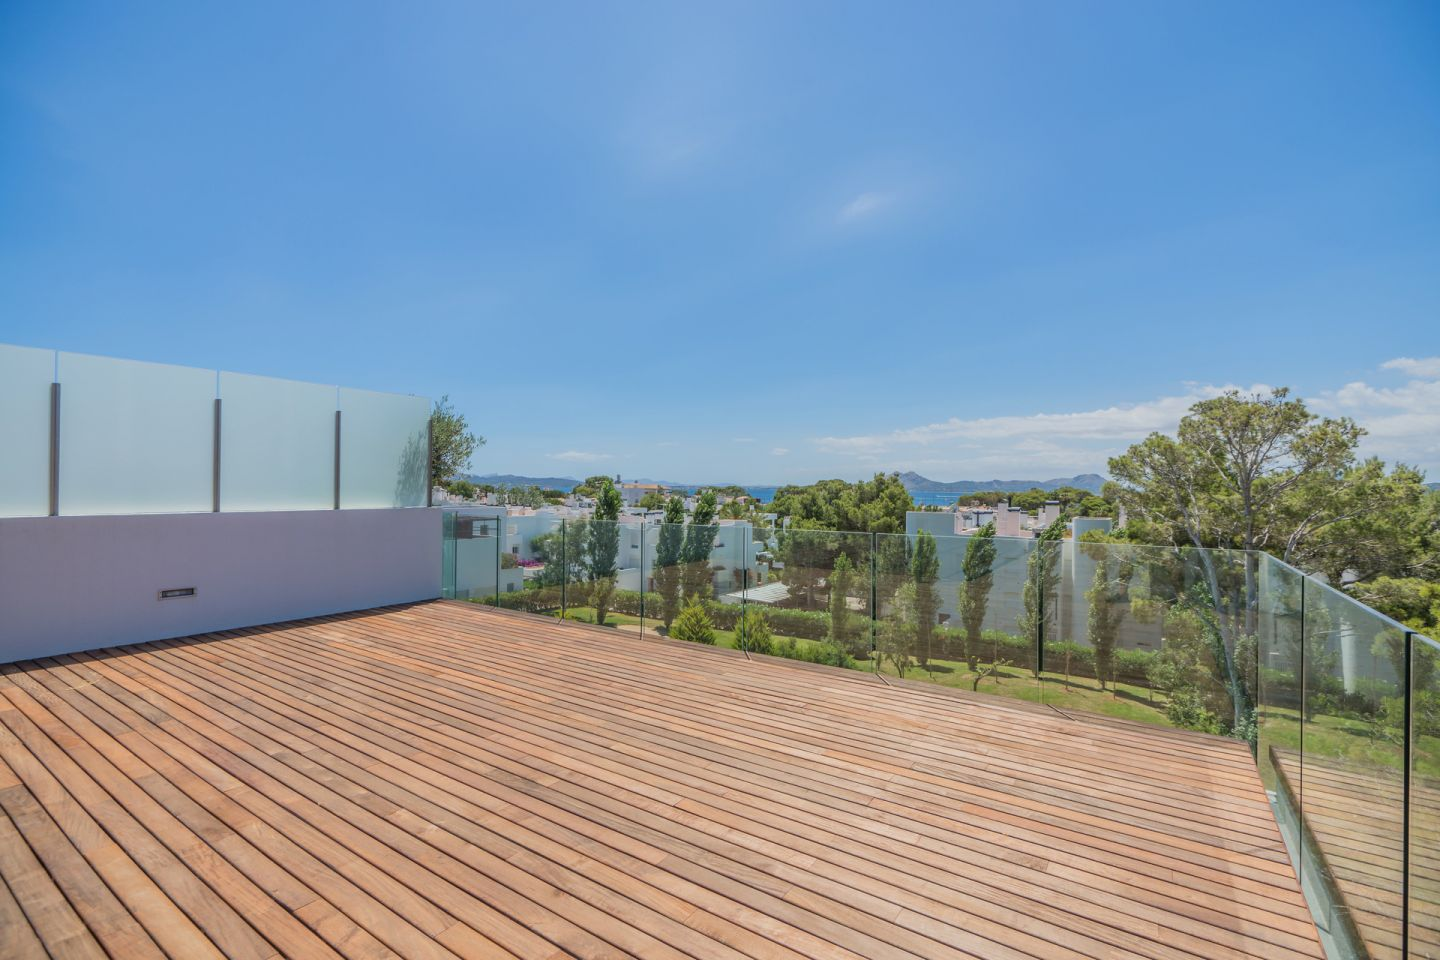 4 Bed Penthouse For Sale in PUERTO POLLENSA 8